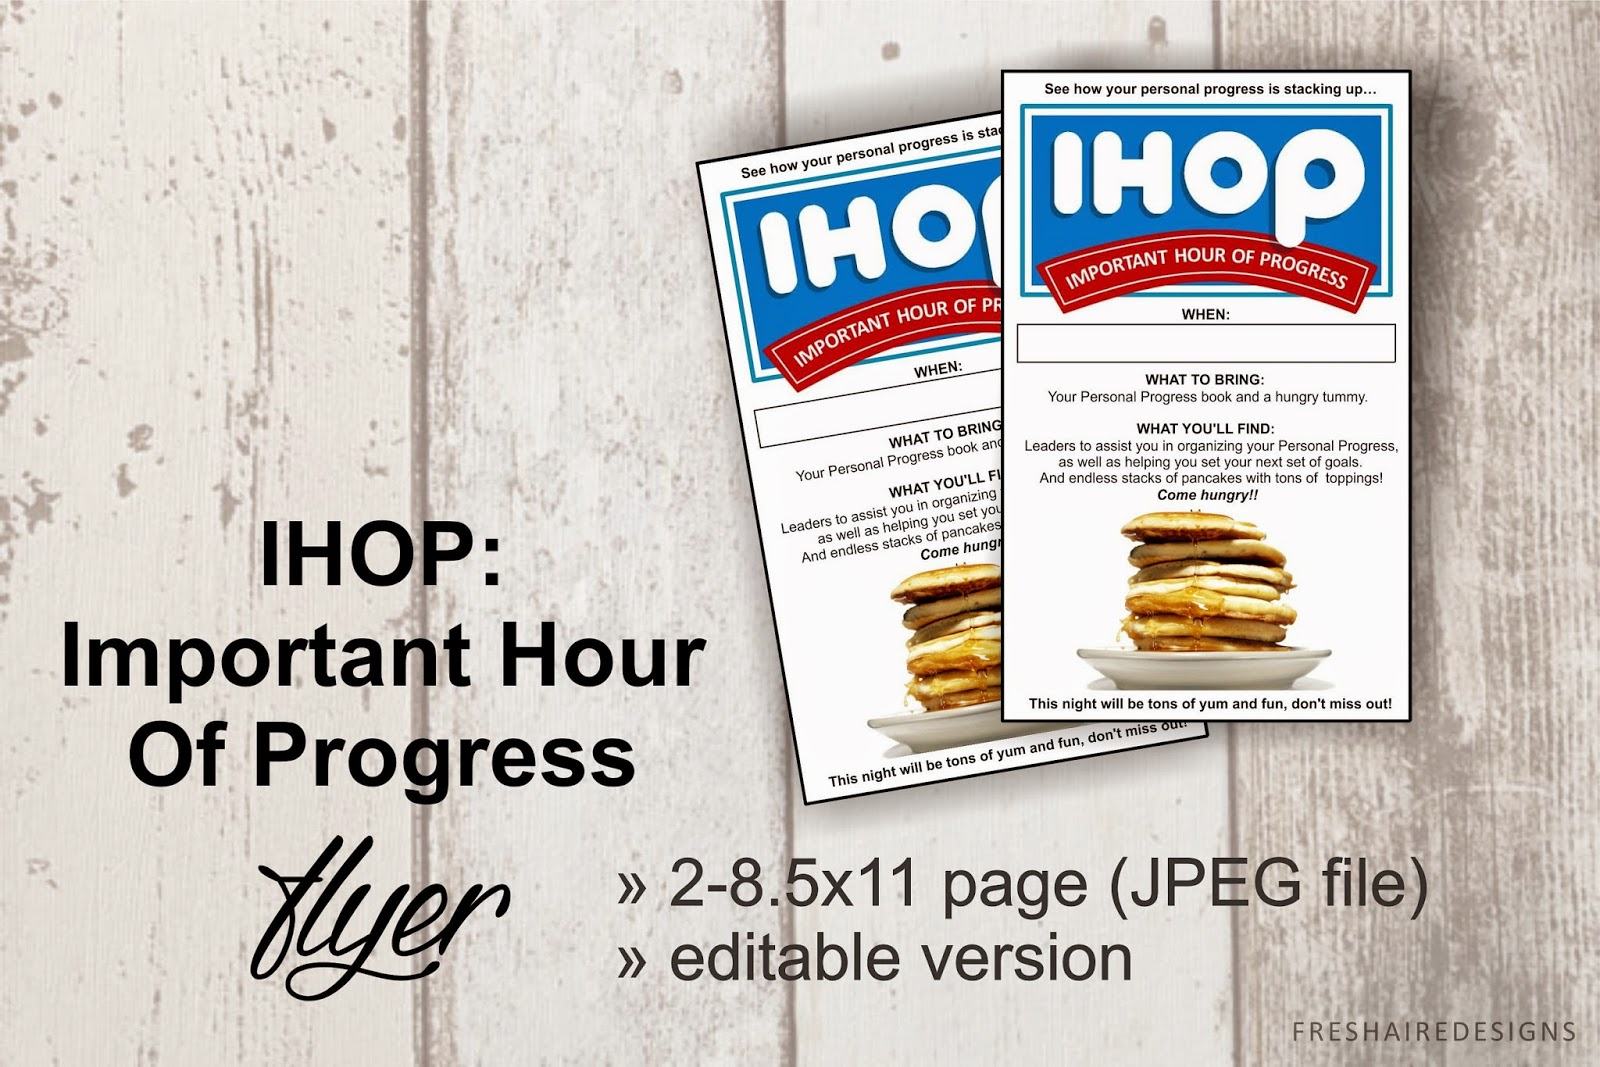 Sisters in Zion, Freshaire Designs: IHOP - Important Hour of Progress